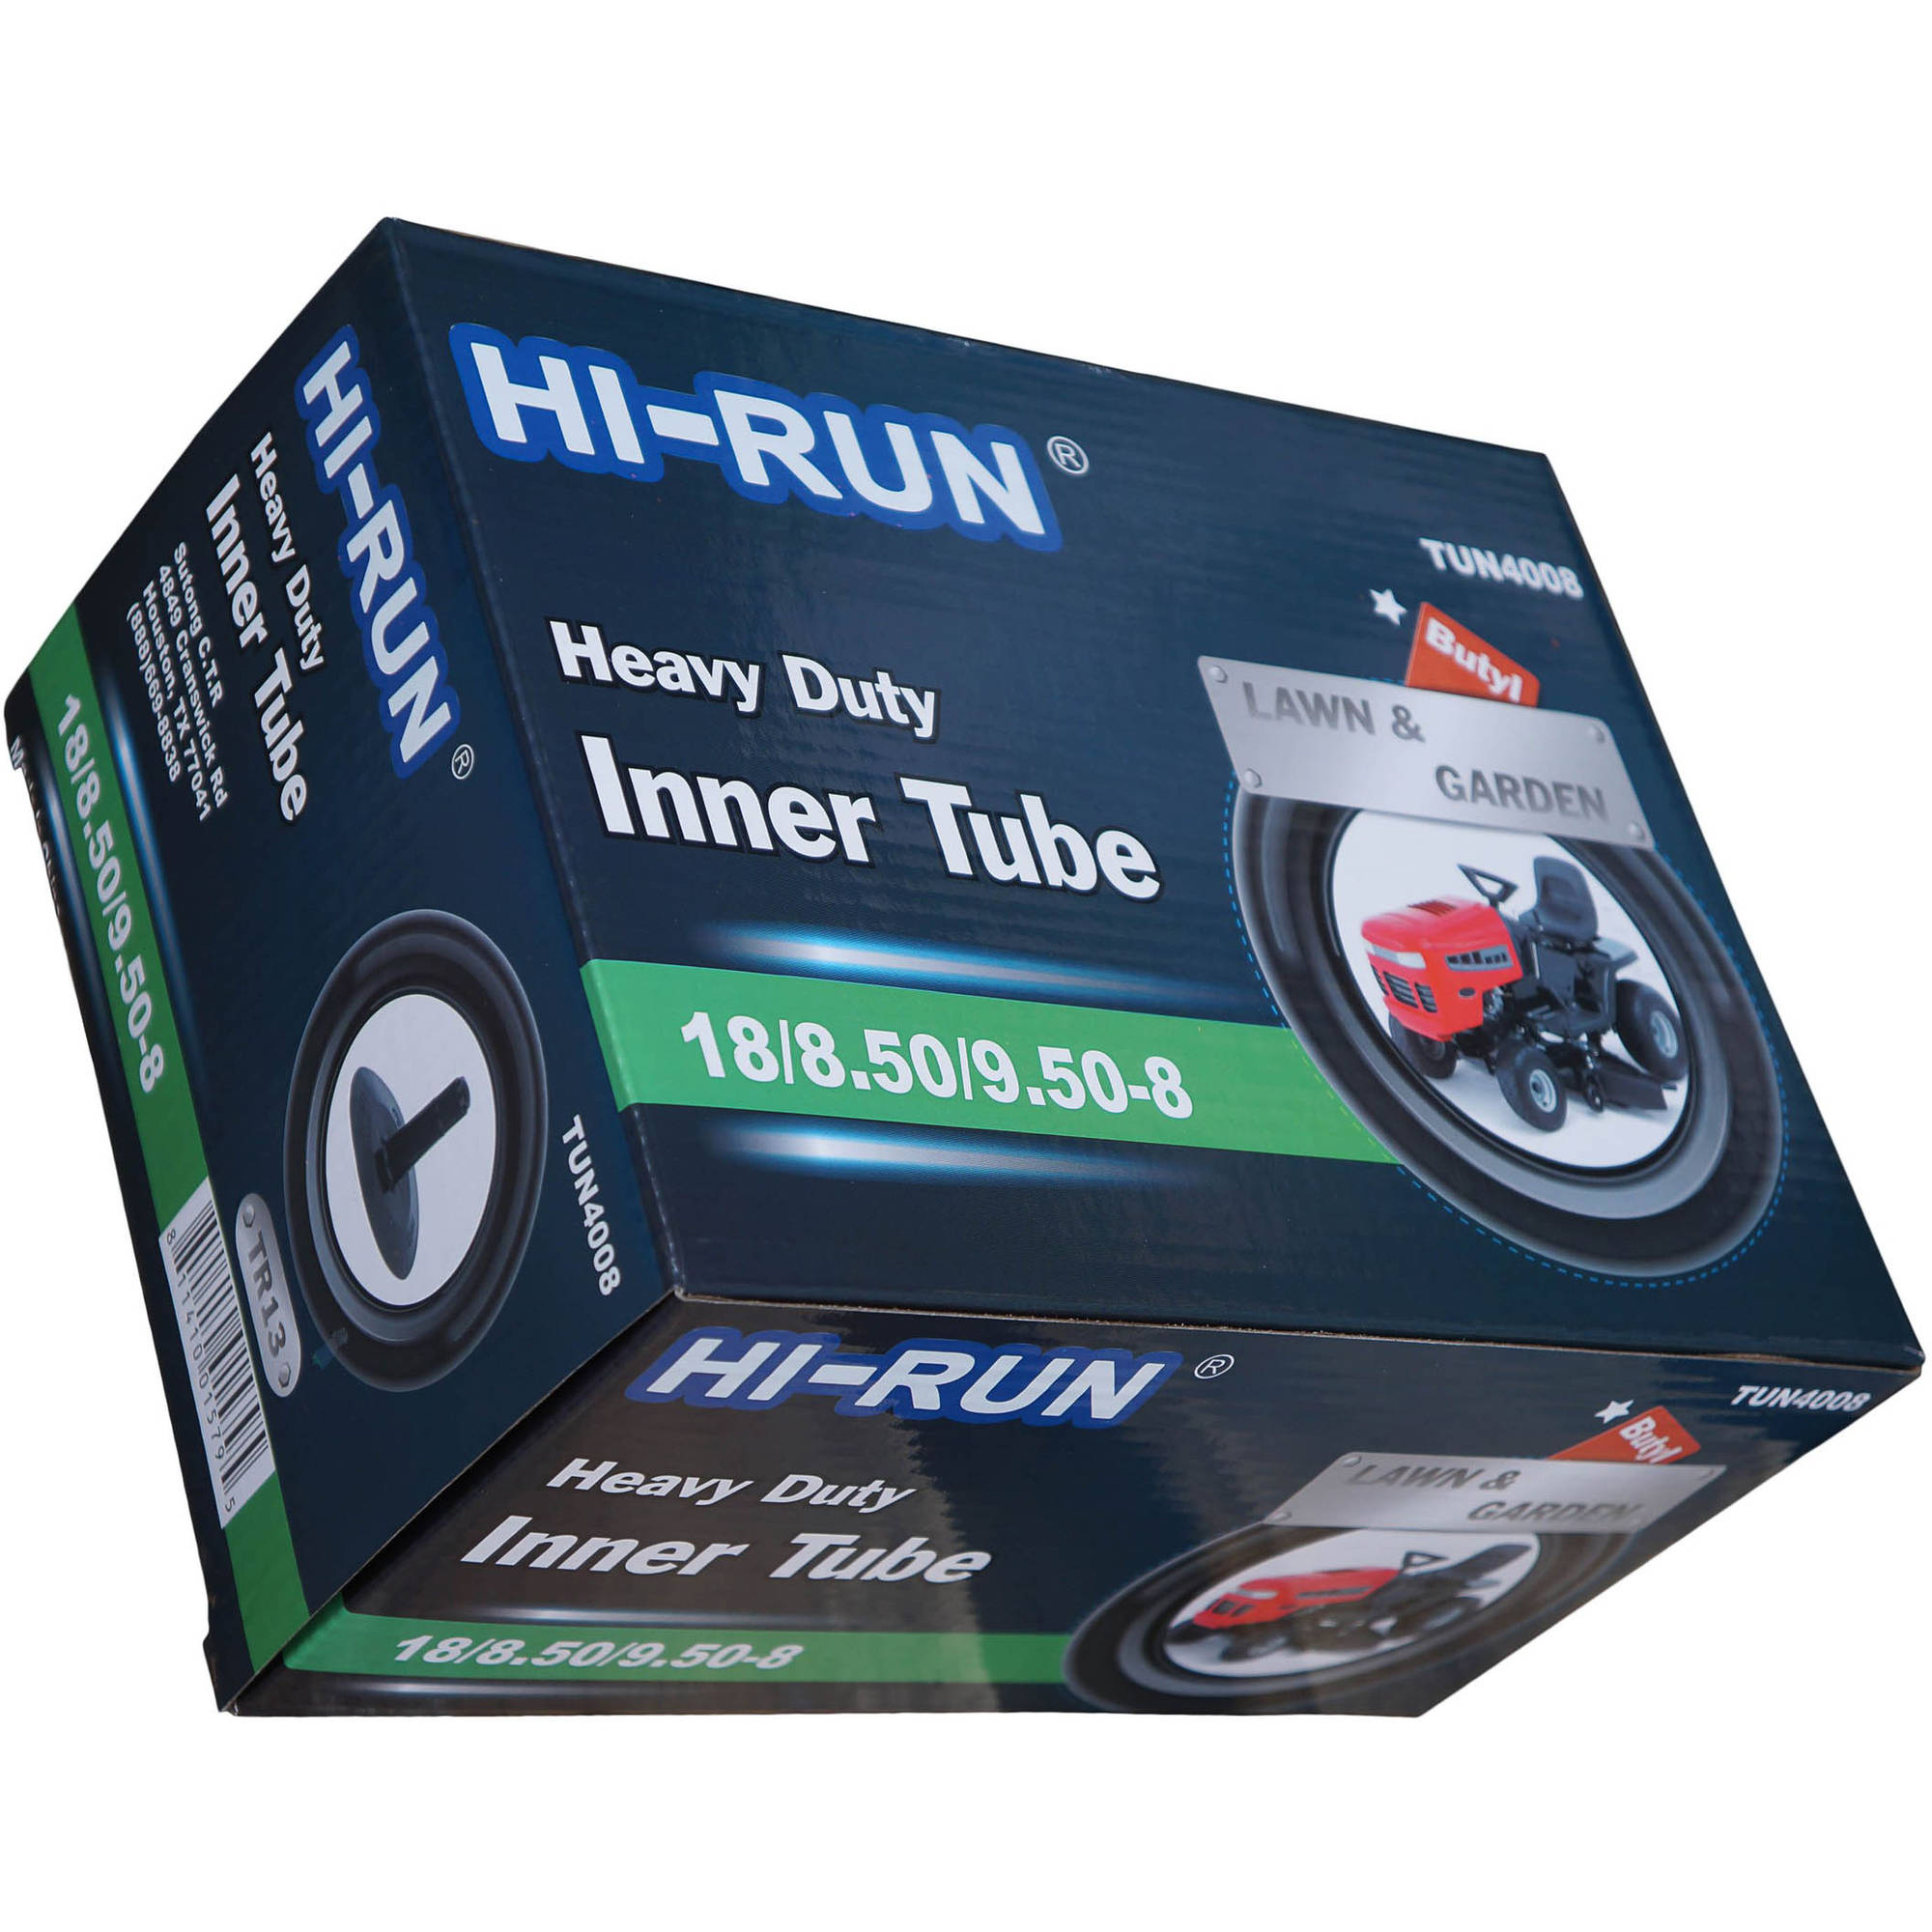 Hi-Run Tube 18x8.50/9.50-8 (TR13)